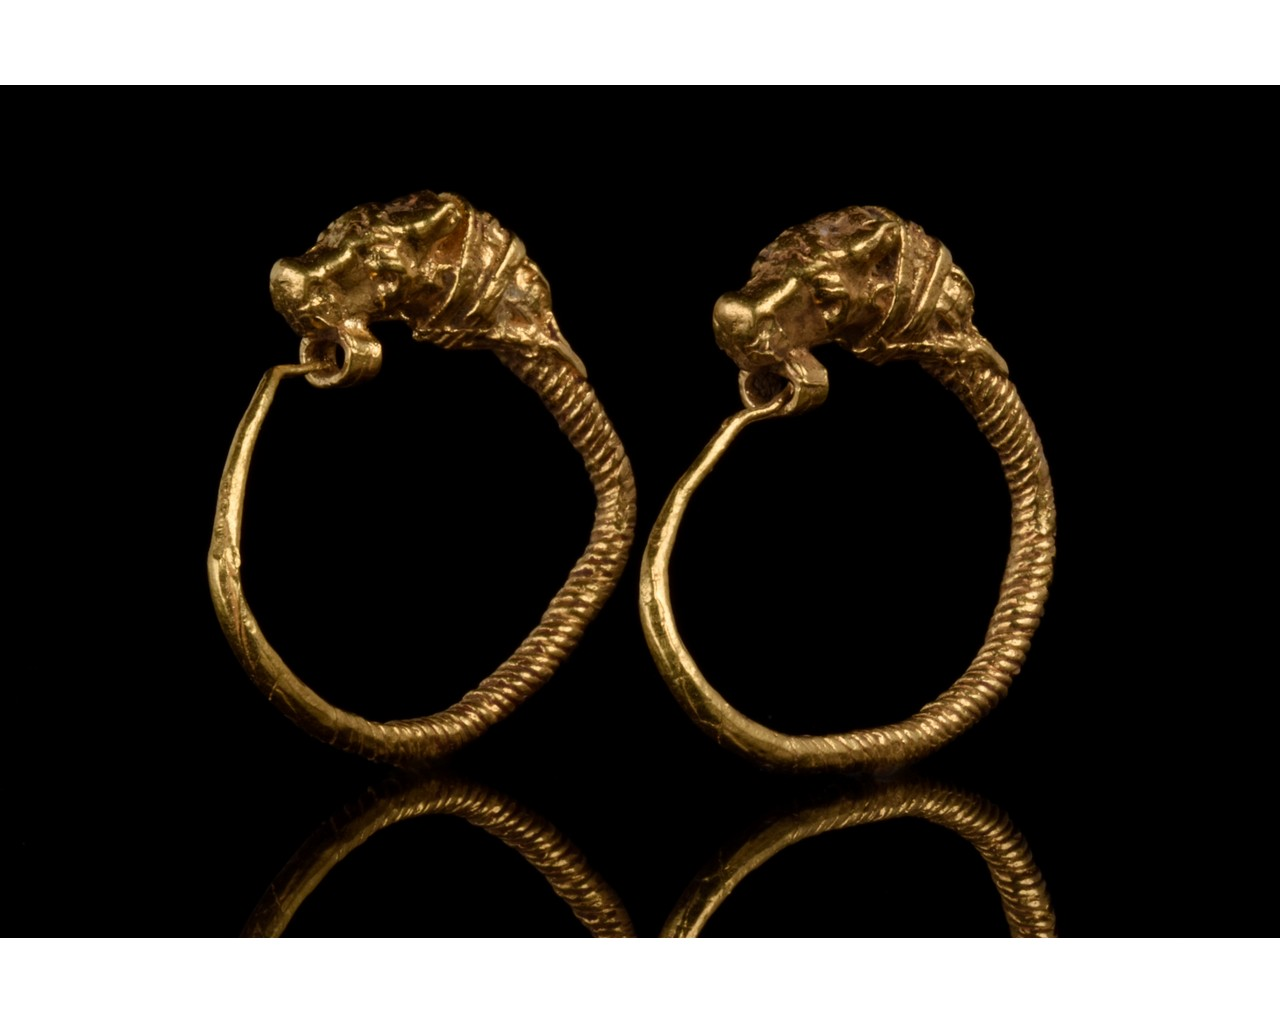 GREEK HELLENISTIC GOLD EARRINGS WITH LIONS - FULL ANALYSIS